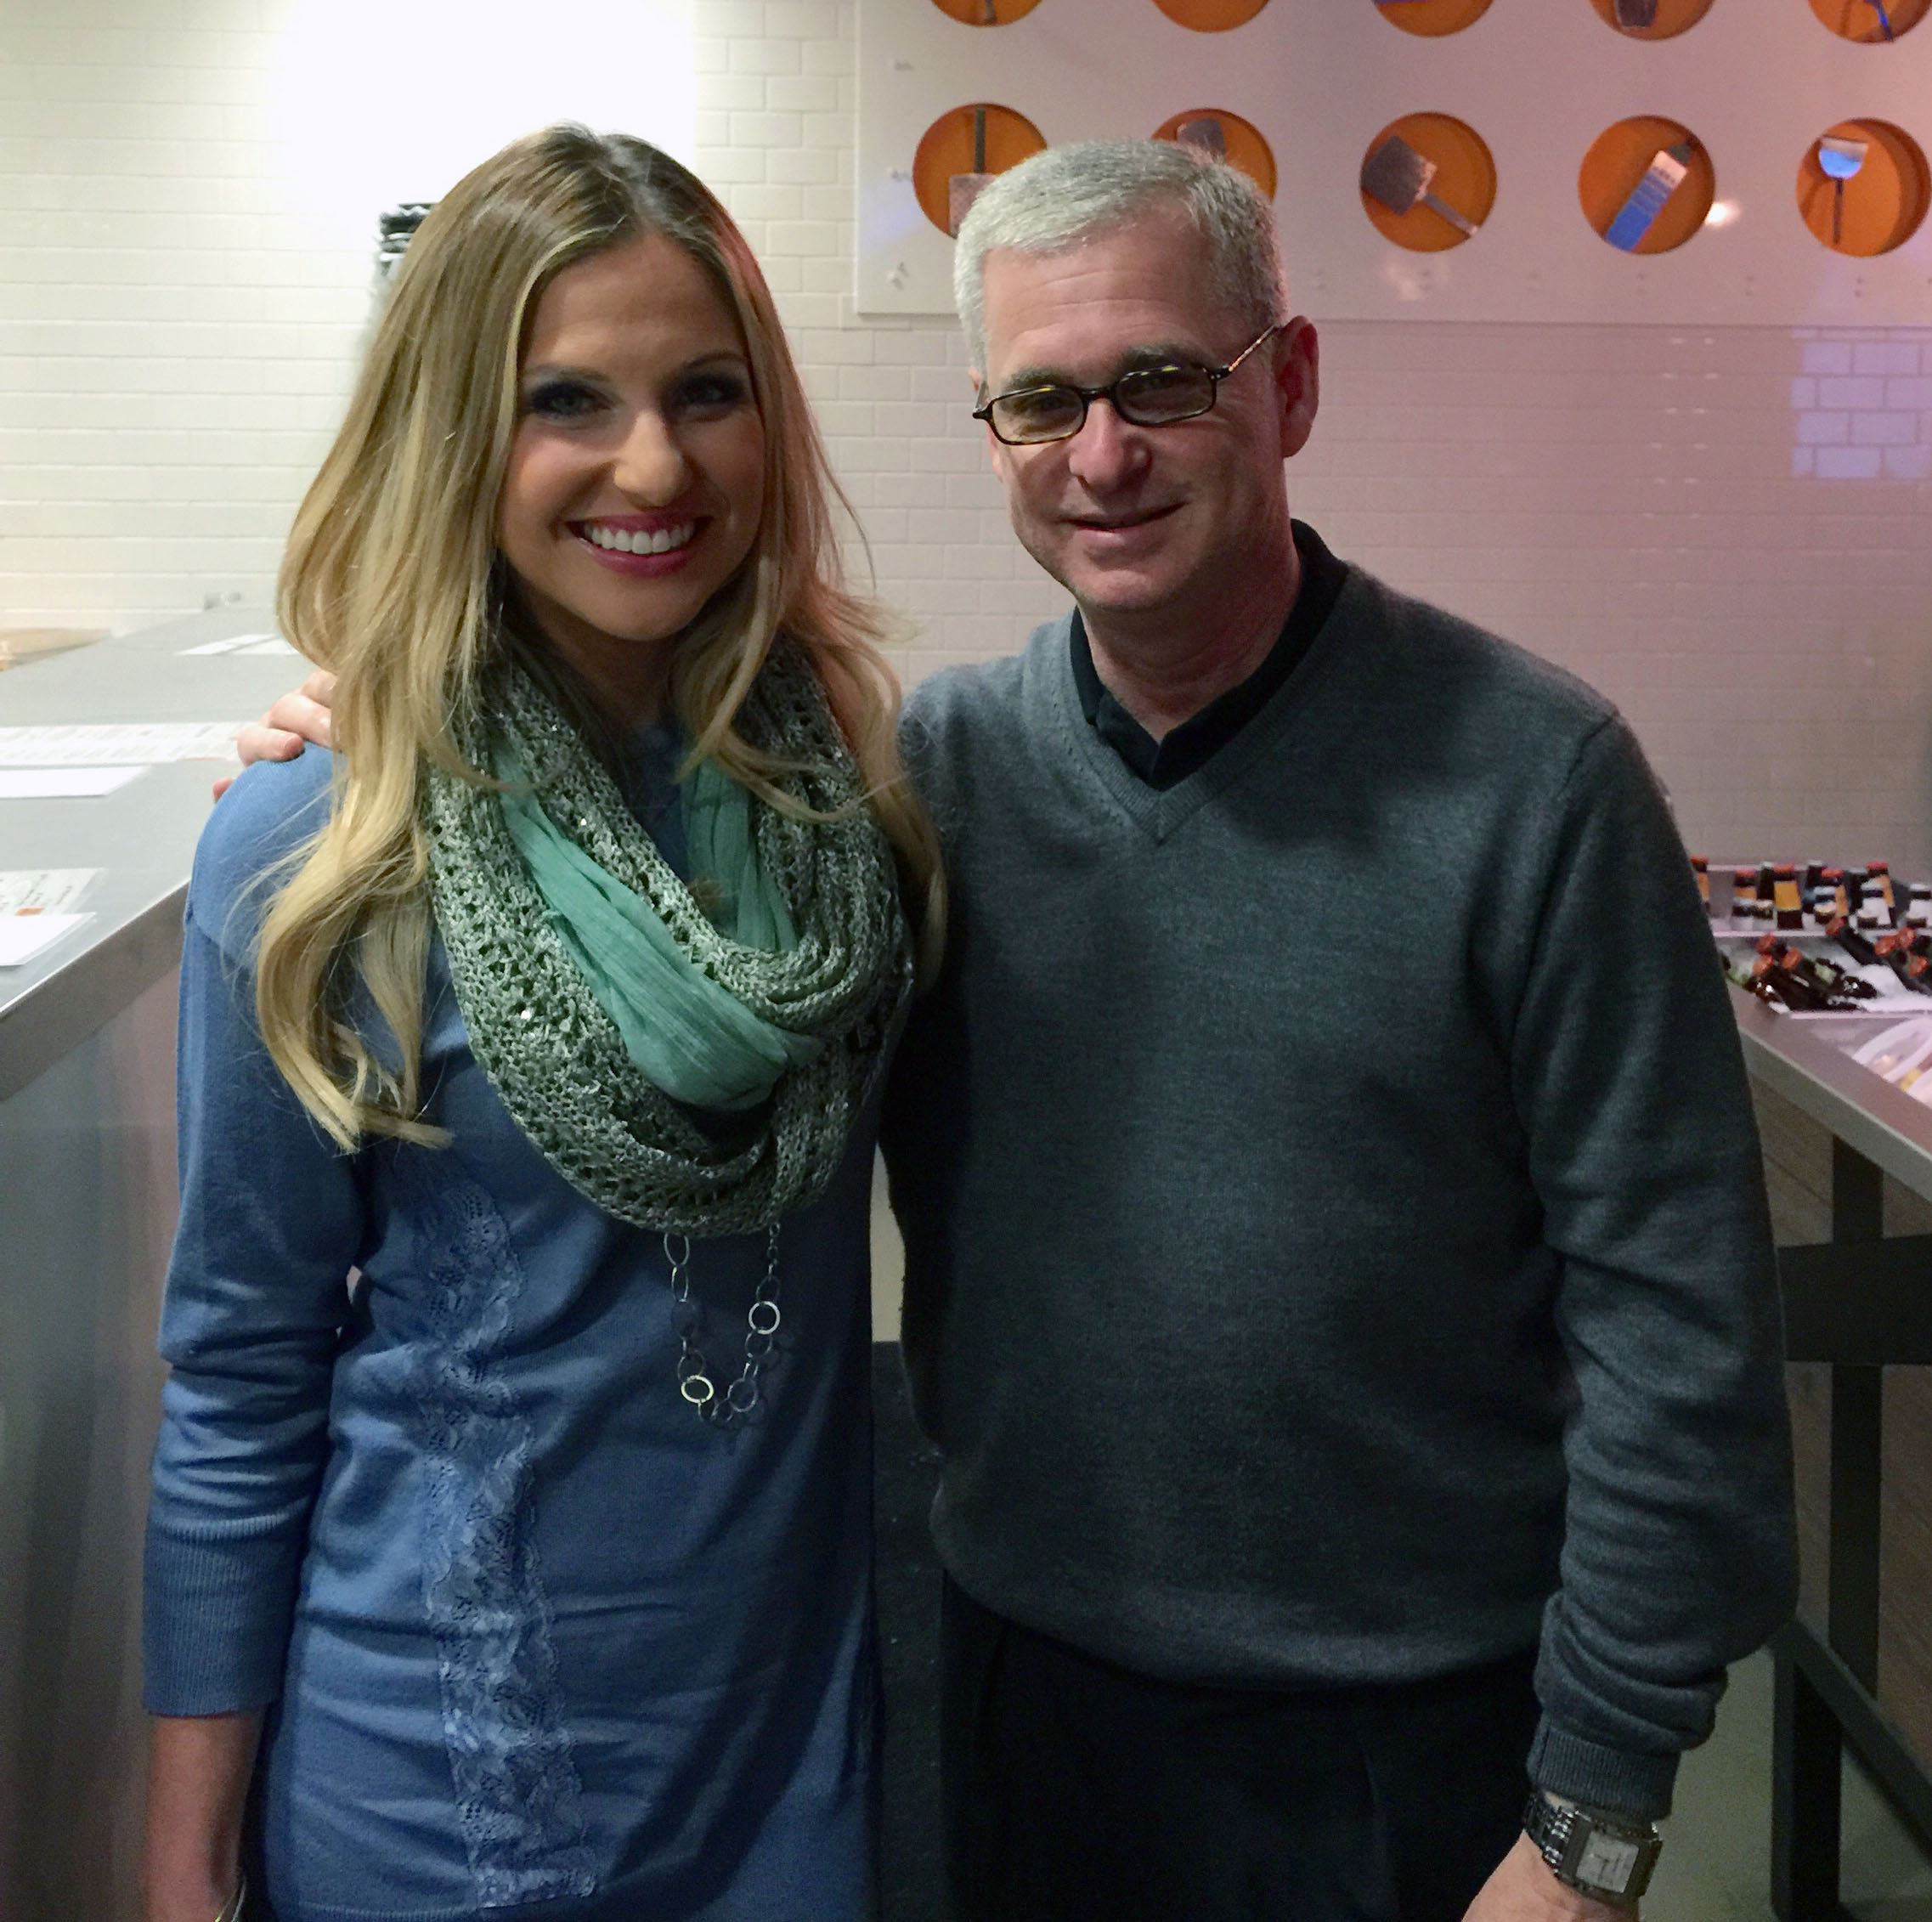 Joined by Katherine Whaley of Channel 13 - Creator of Kat's Mac & Cheese Burger